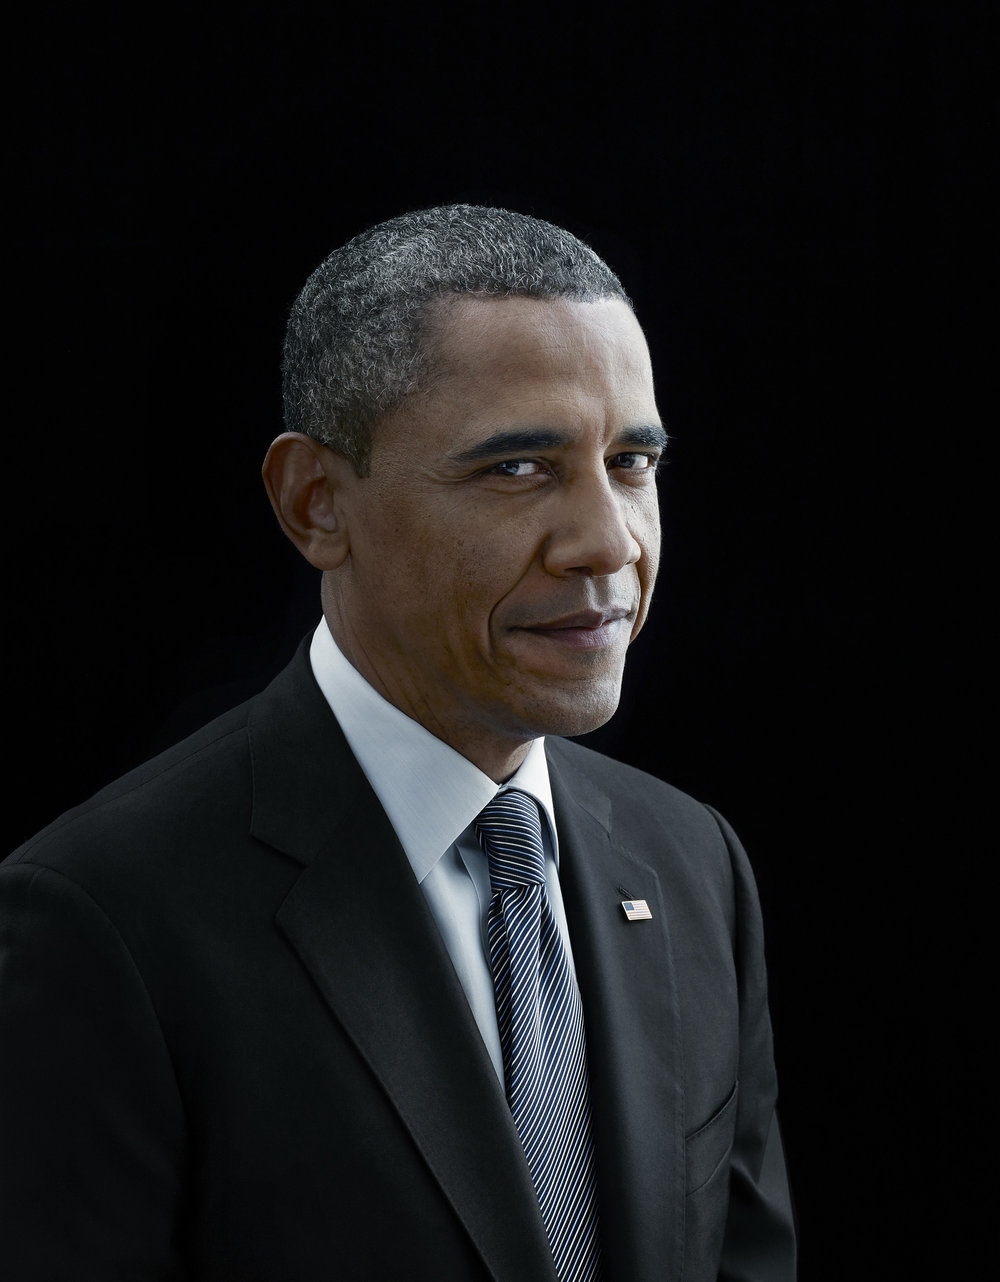 Barack_Obama_Chris_Buck_41715_2_smile_crop_s4_RGB_UNEASY_V5__.jpg